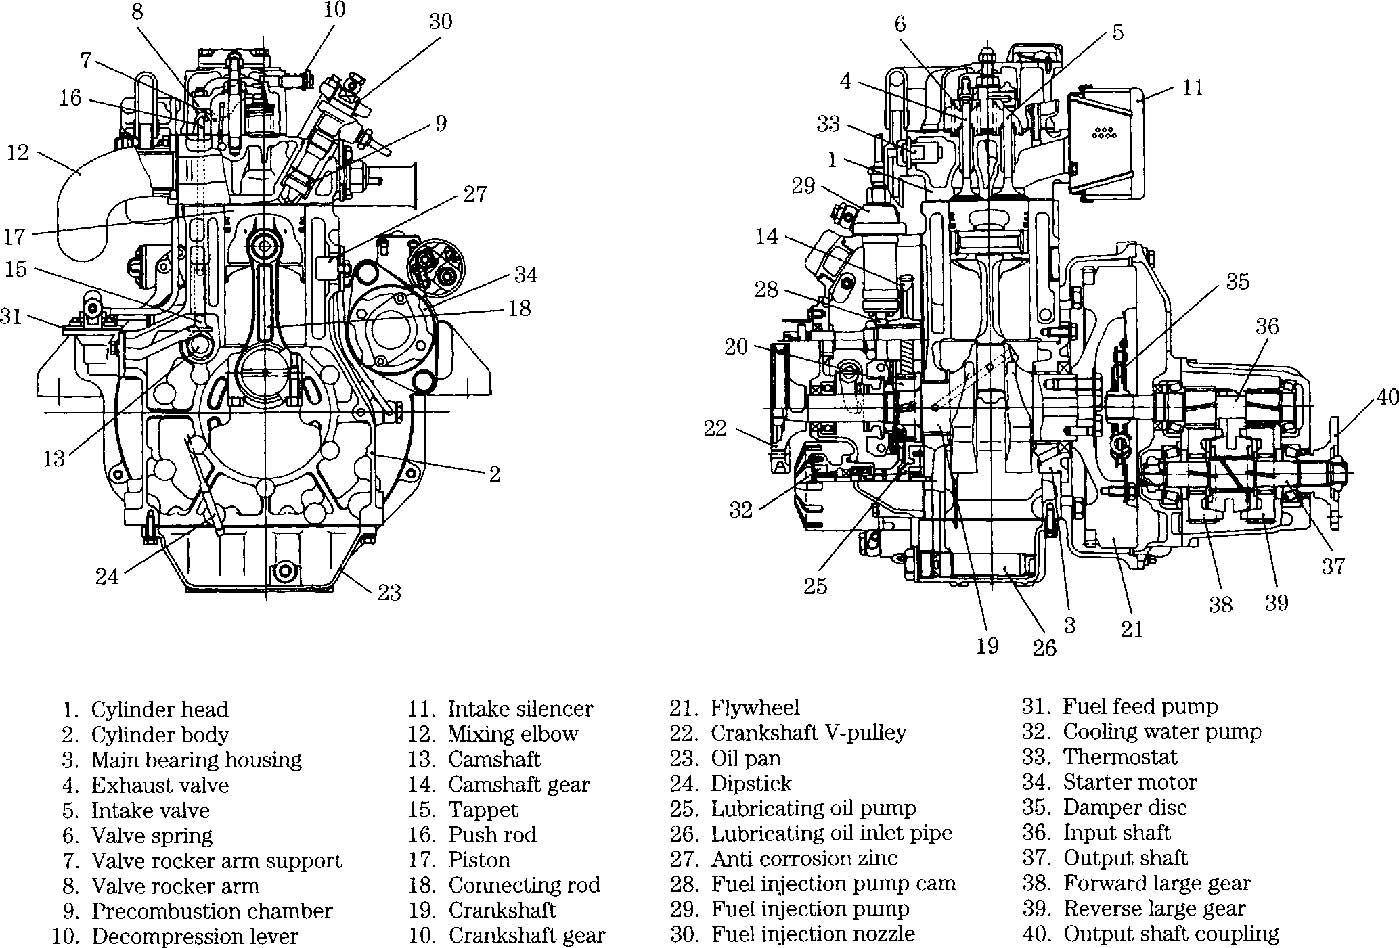 basic small engine diagram one line example marine engines or parts of internal combustion